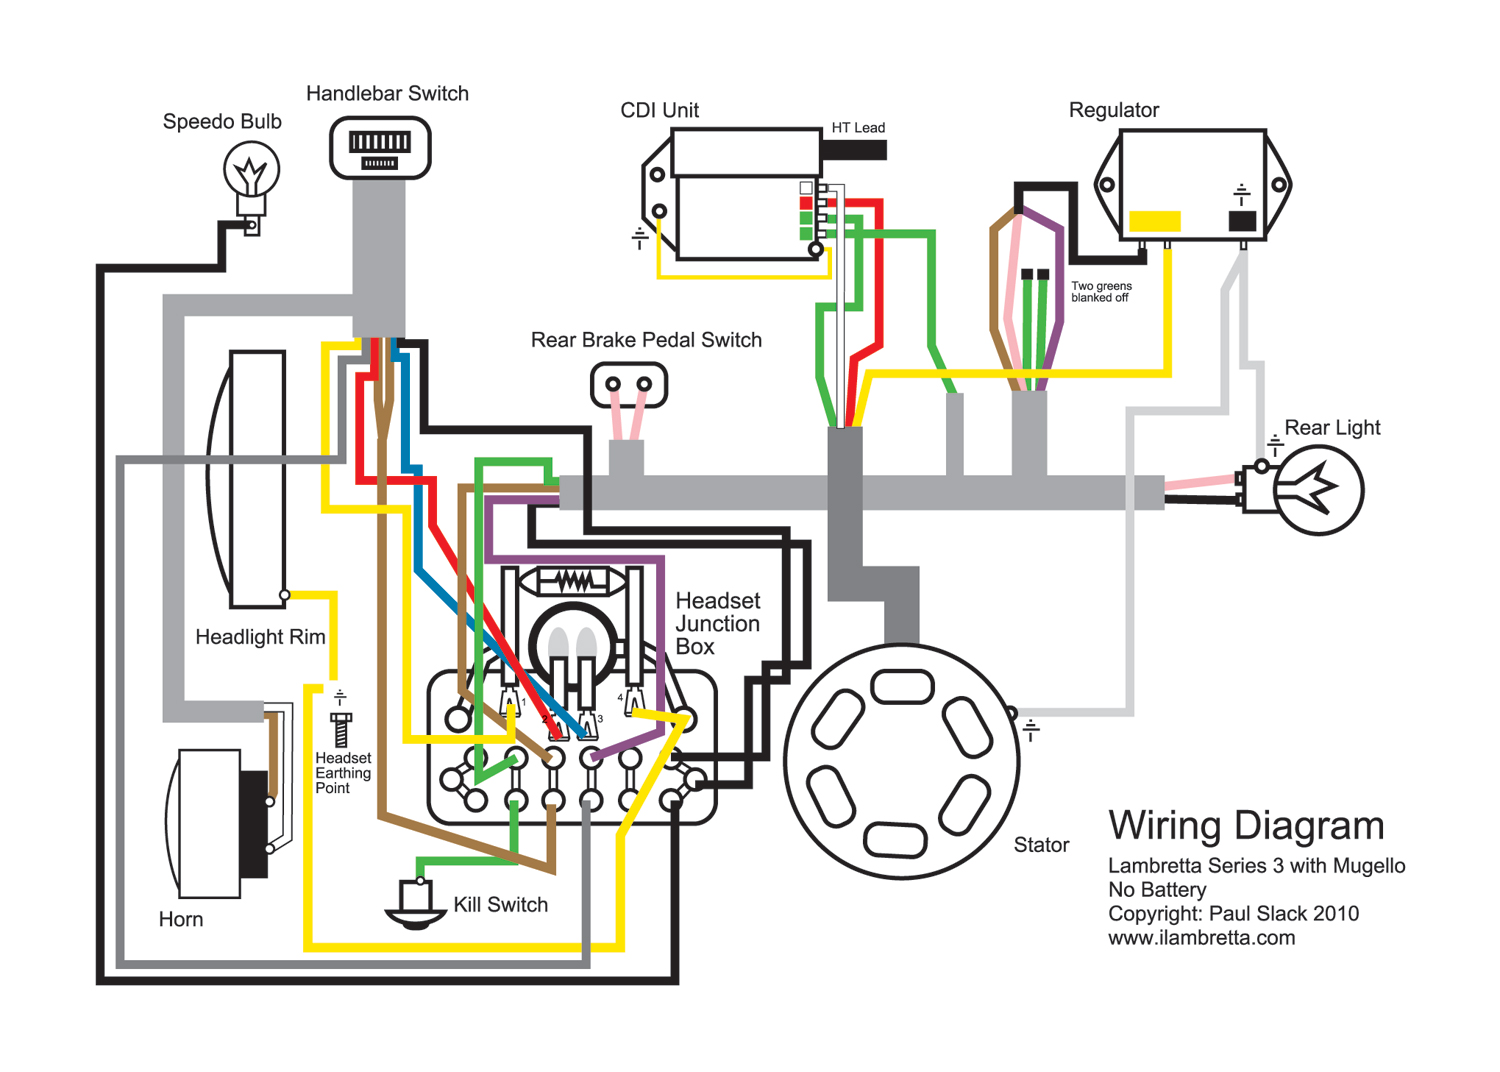 12v Boat Wiring Diagram | Wiring Diagram 2019  Wire Bilge Pump Wiring Diagram on bilge water, fuel pump wiring diagram, 220 well pump wiring diagram, condensate pump wiring diagram, fire pump wiring diagram, washdown pump wiring diagram, water pump wiring diagram, sump pump wiring diagram, submersible pump wiring diagram, hydraulic pump wiring diagram, system diagram, trim pump wiring diagram, bilge pump hose, hayward pool pump wiring diagram, bilge pump mounting diagram, vacuum pump wiring diagram, bilge pump plumbing diagram, sewage pump wiring diagram, level switch diagram, heat pump wiring diagram,